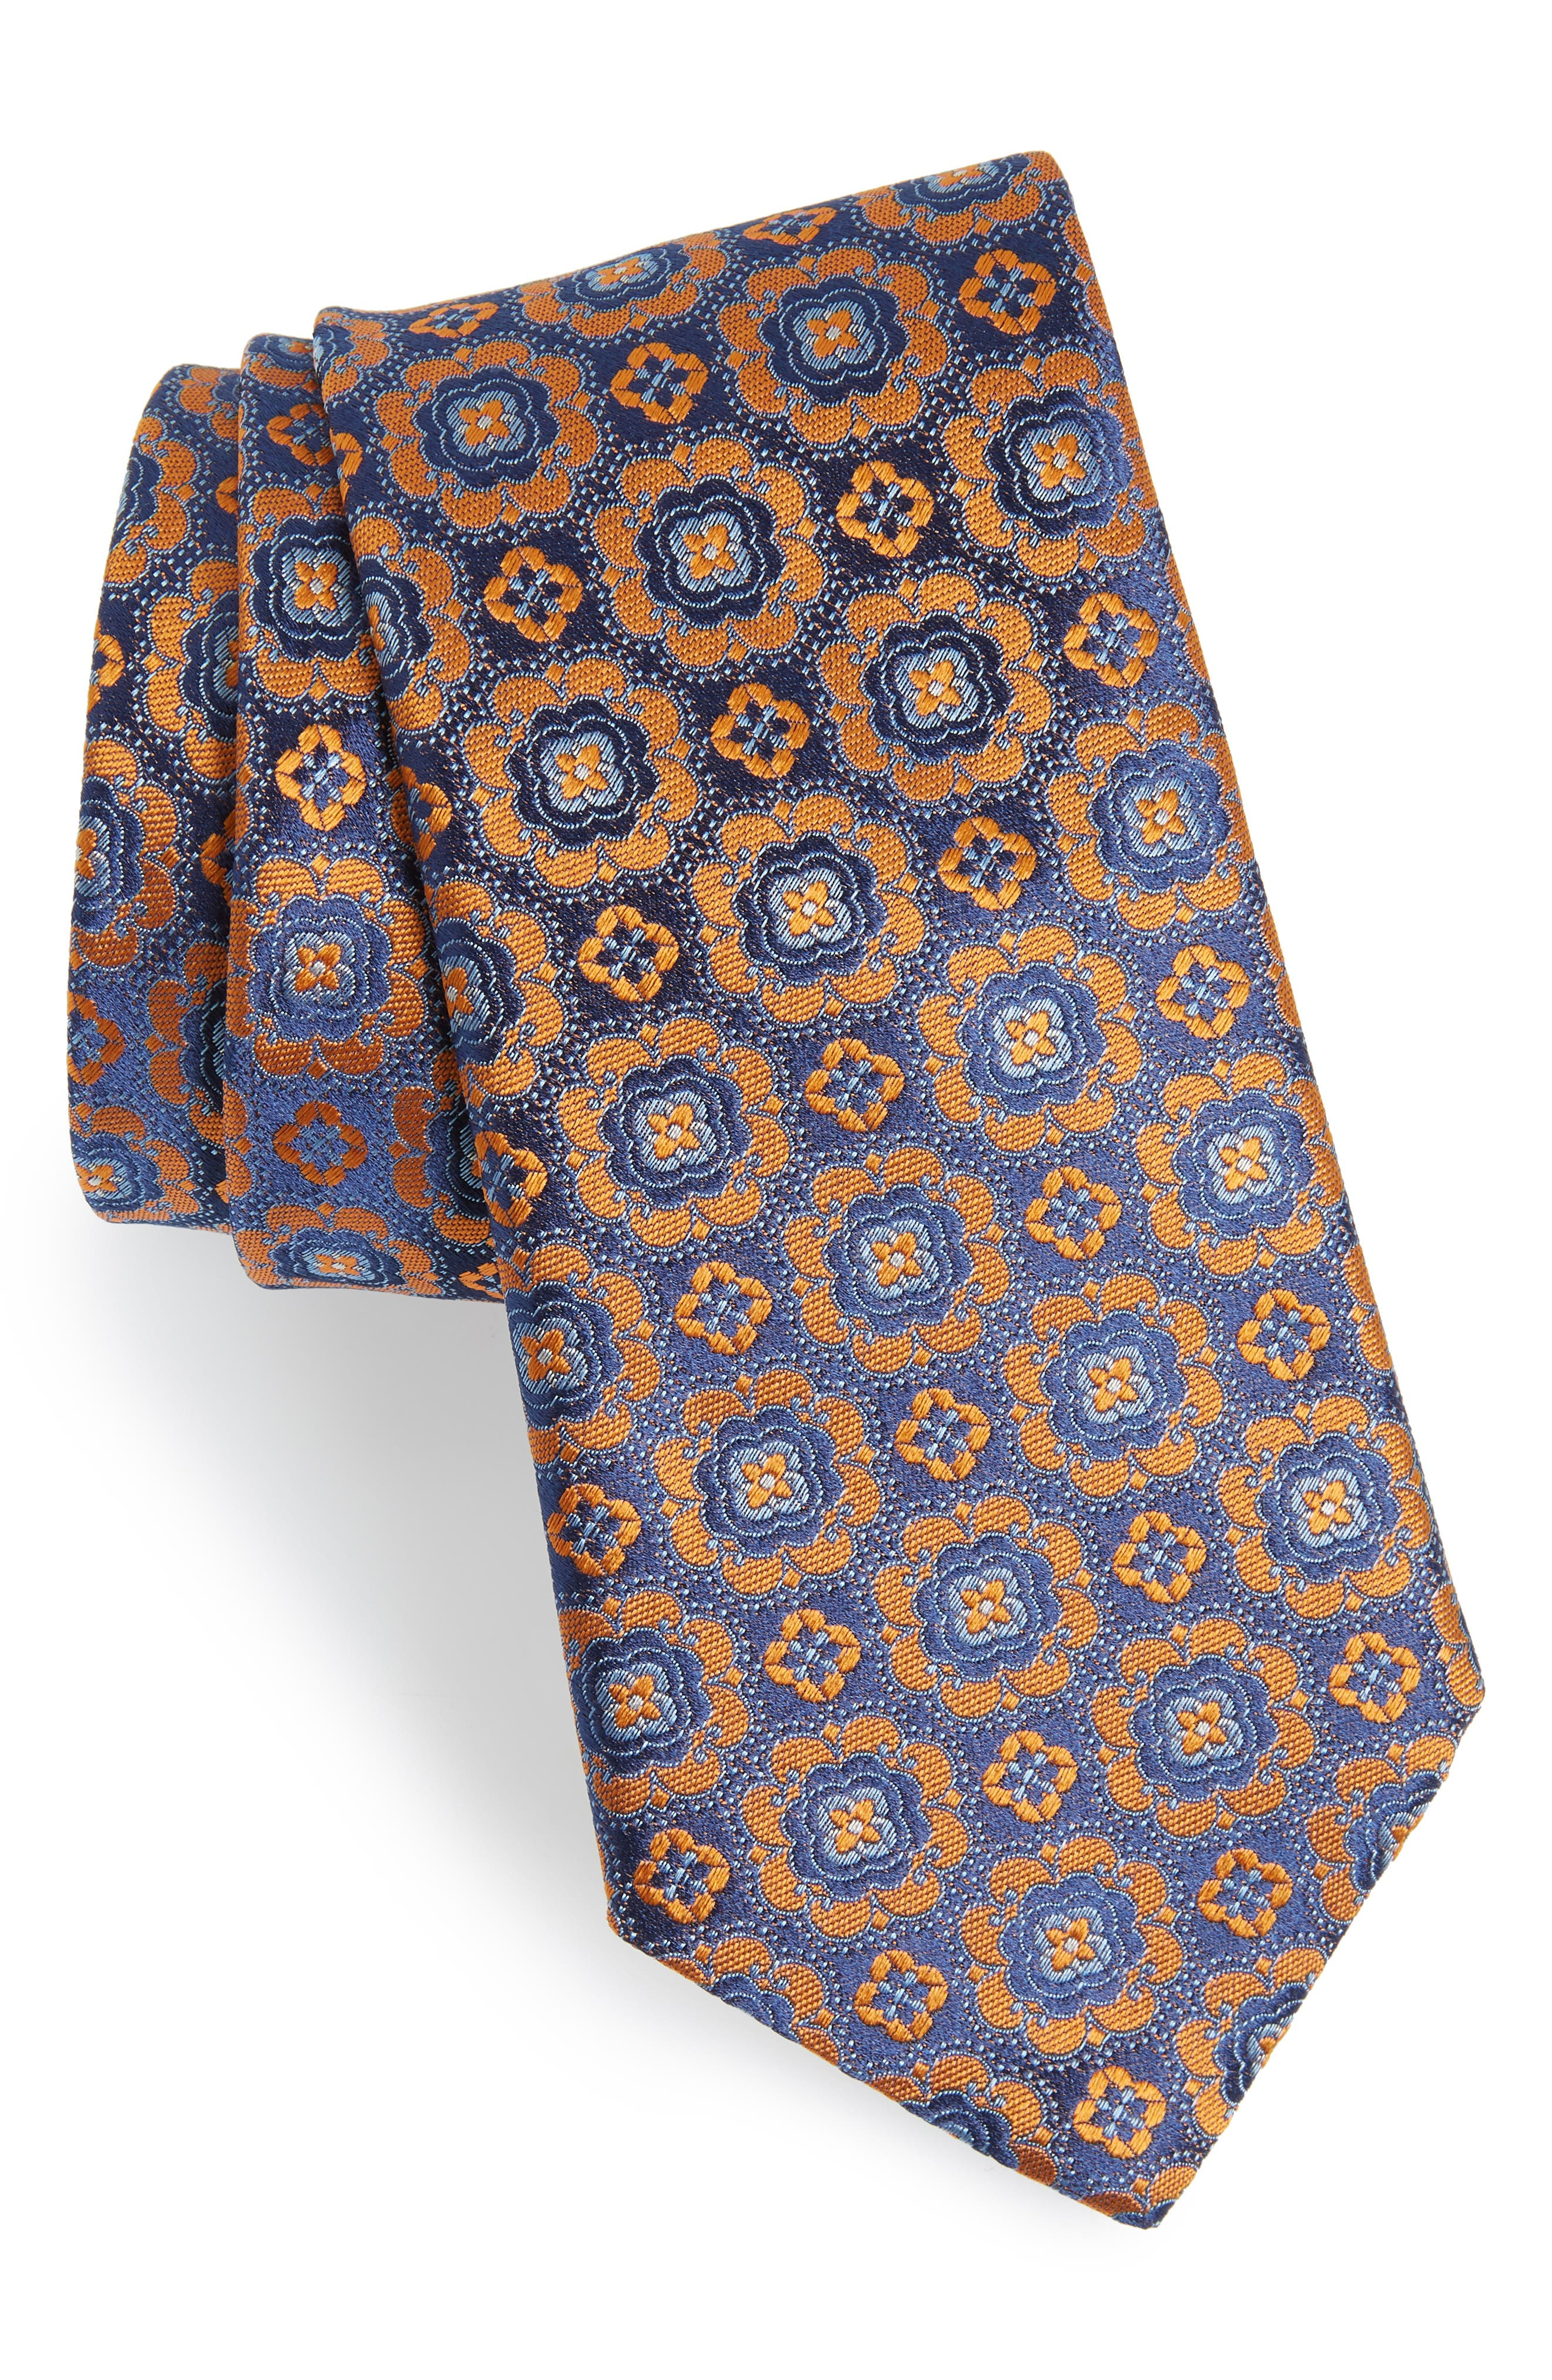 Medallion Silk Tie,                             Main thumbnail 1, color,                             800